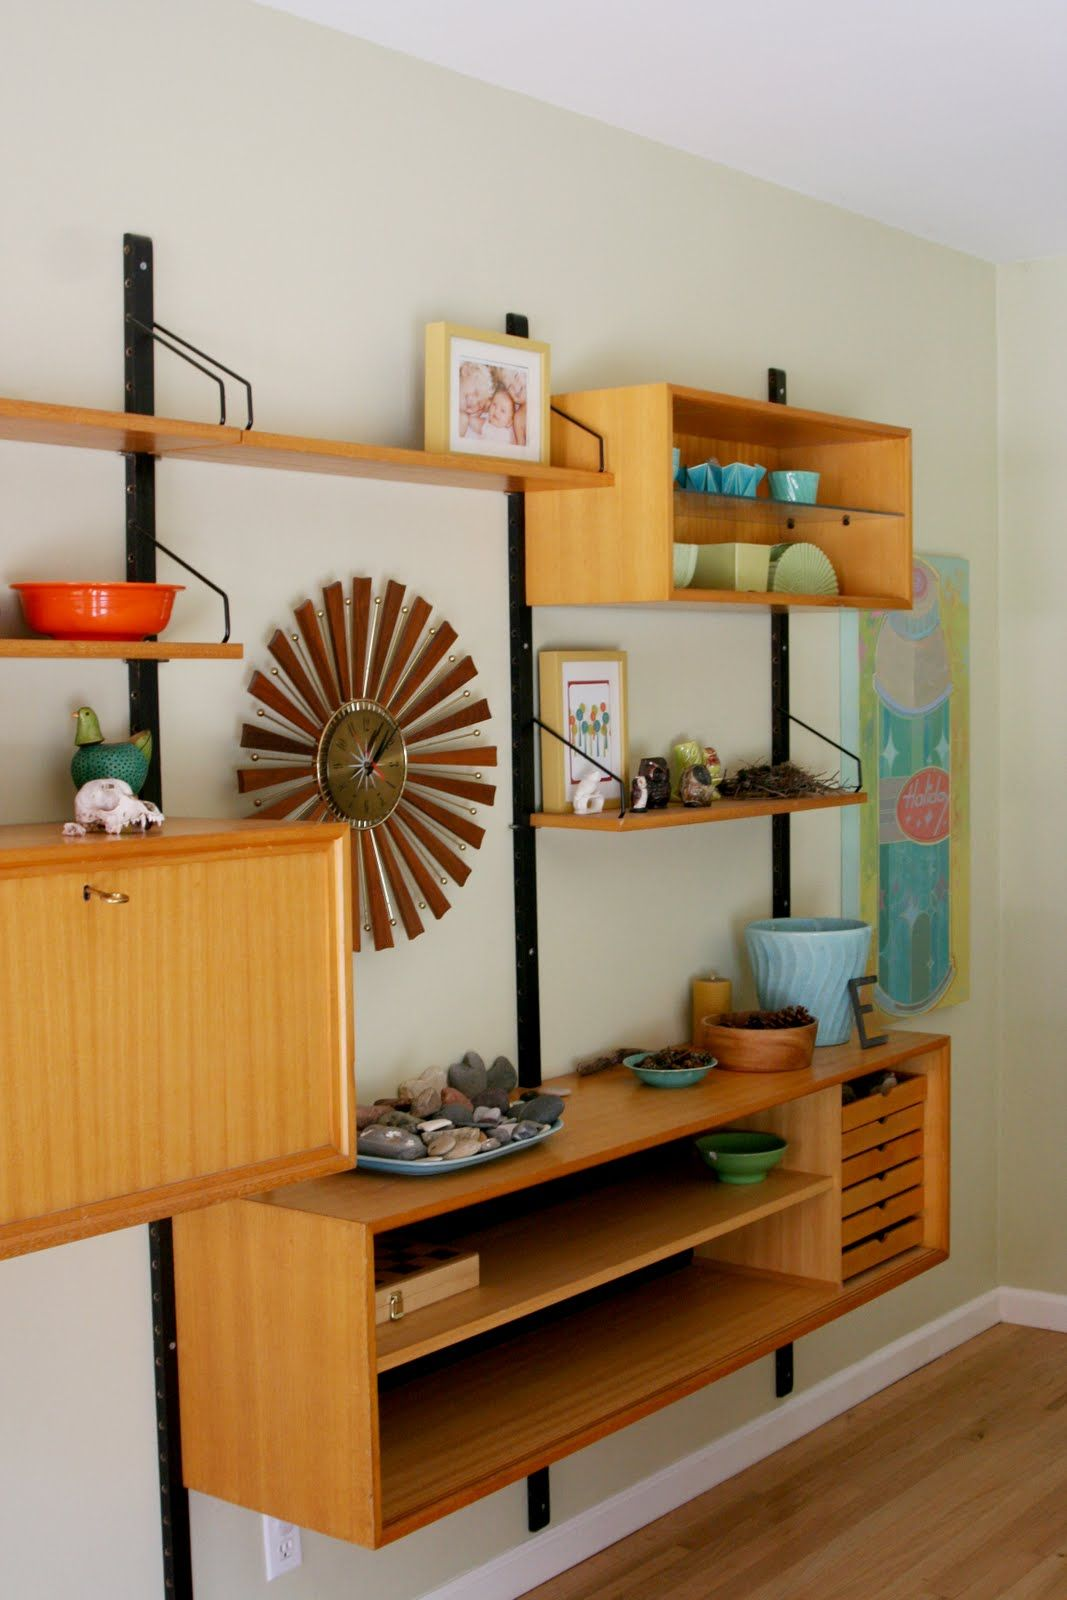 Pictures Of Mid Centry Shelving Units Century Modern Freak Wall Unit From Amsterdam